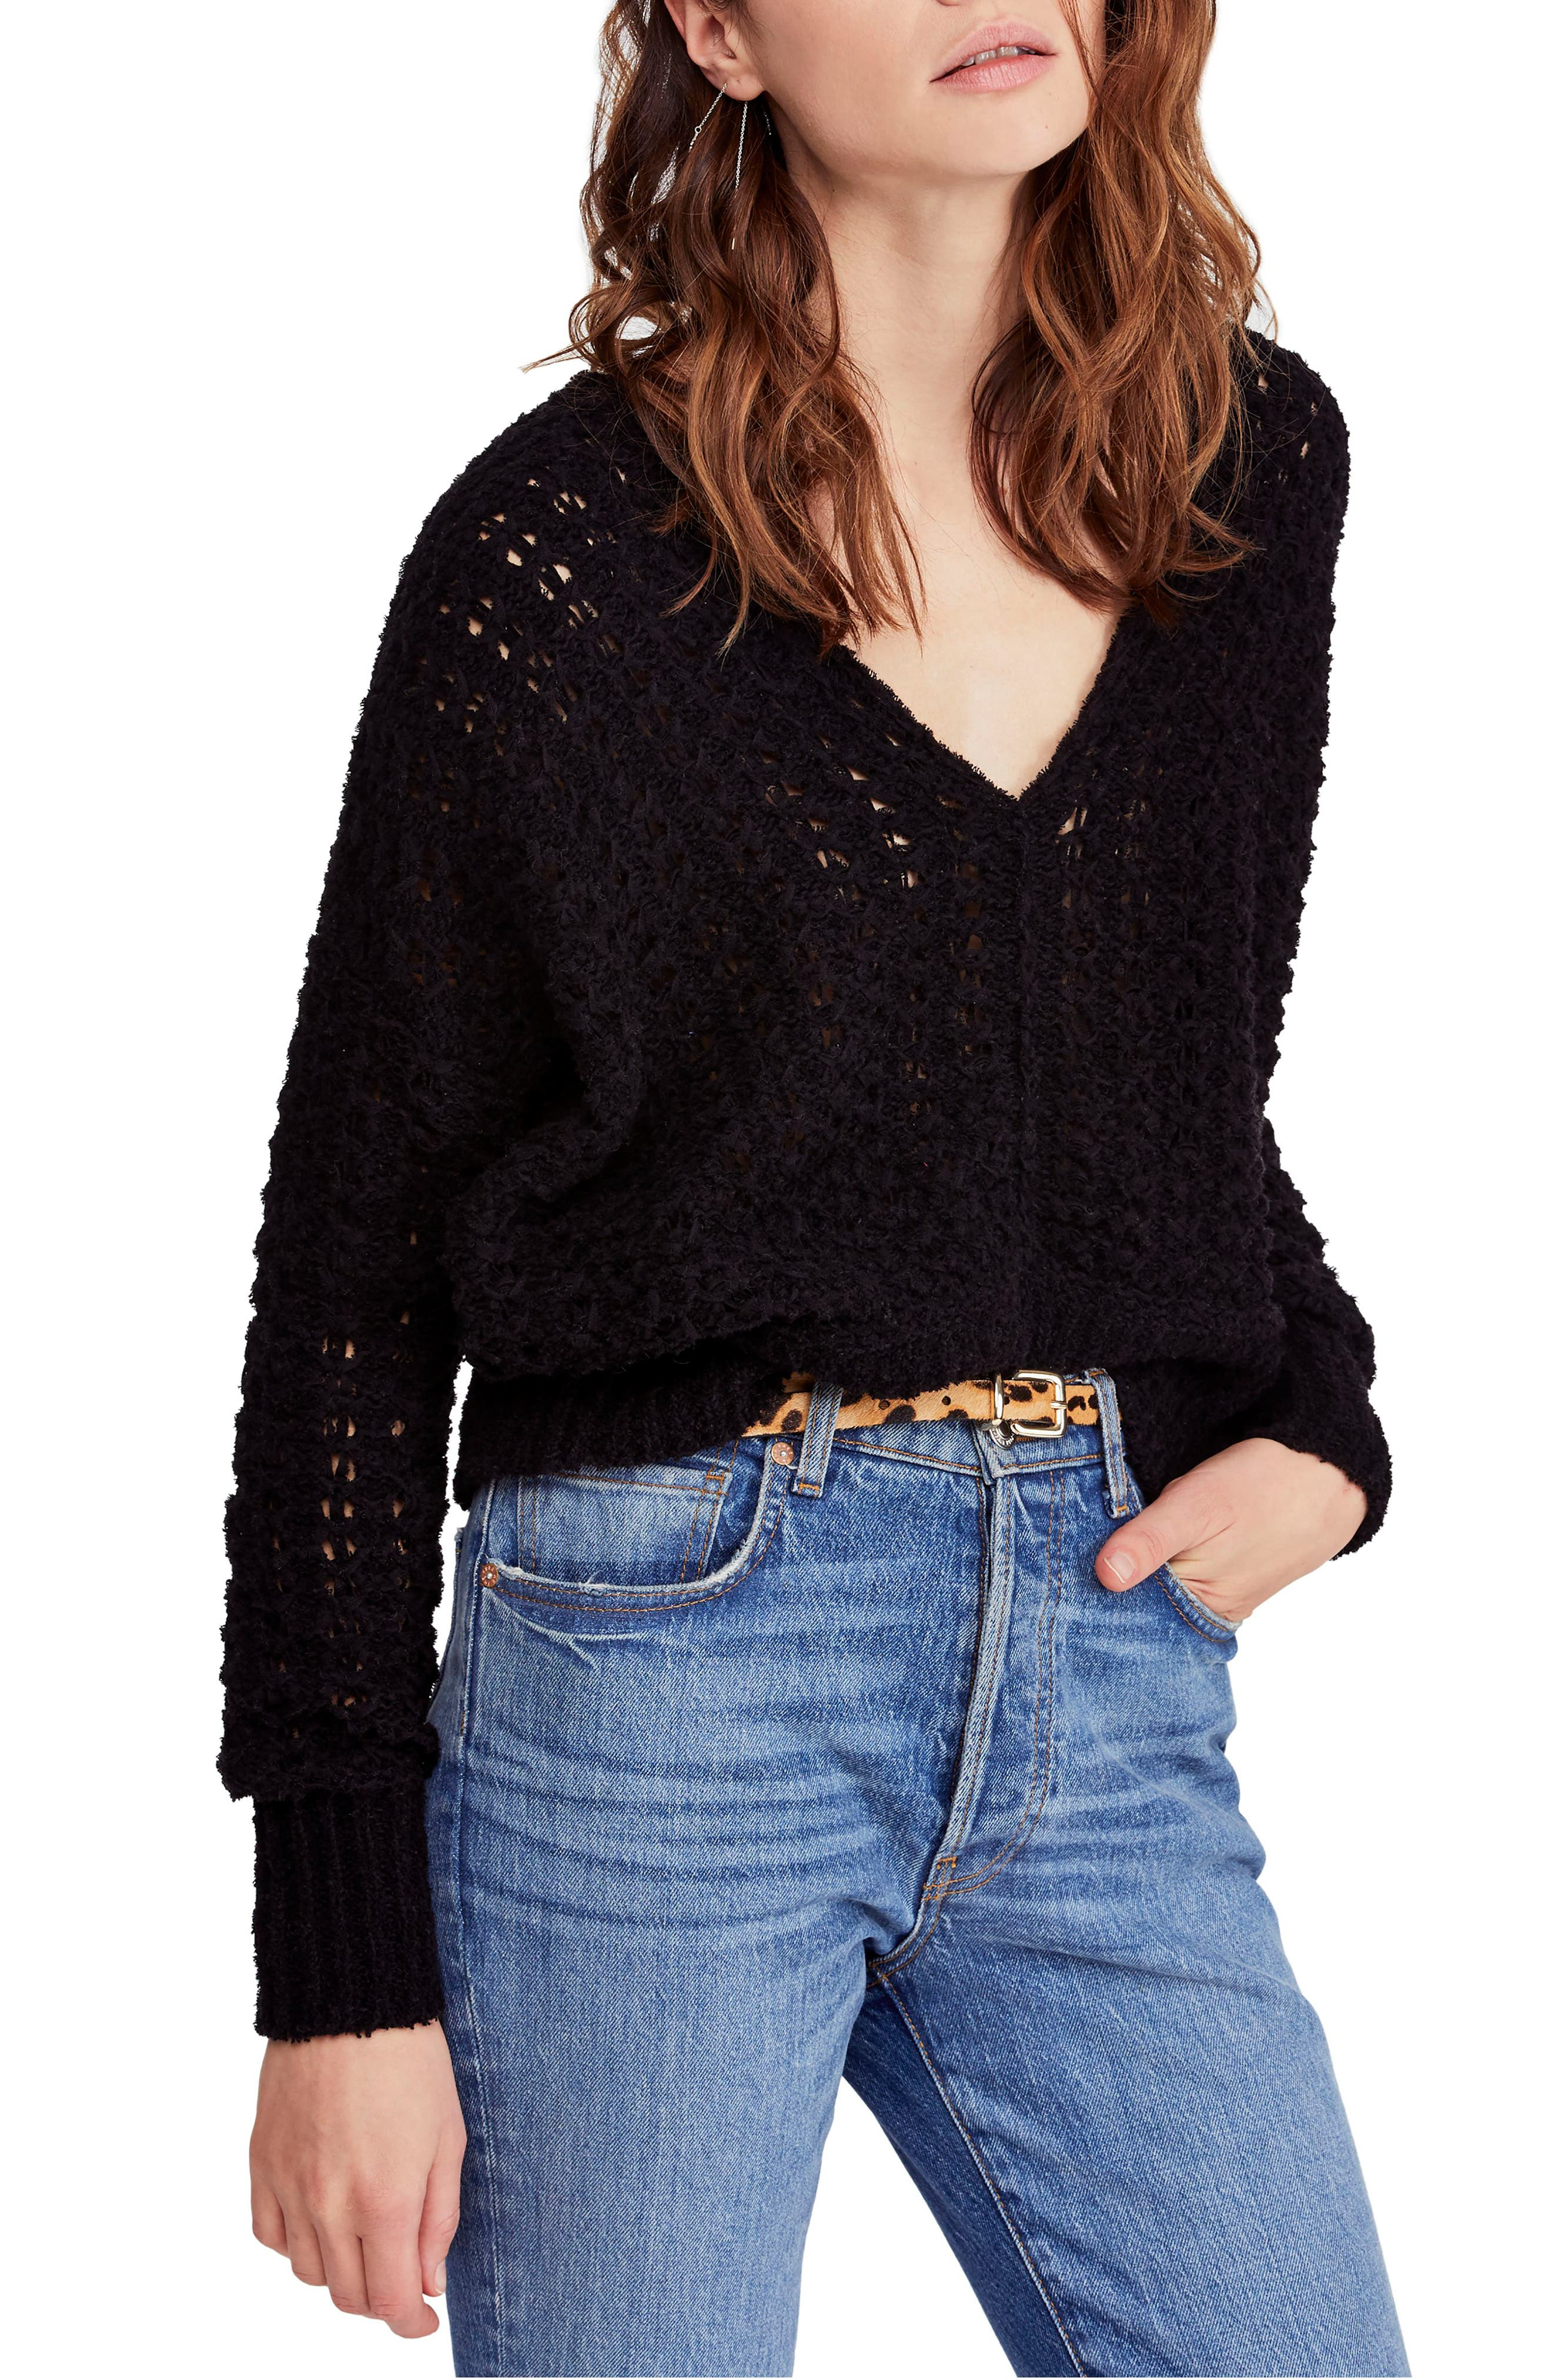 Best of You Sweater,                             Main thumbnail 1, color,                             BLACK